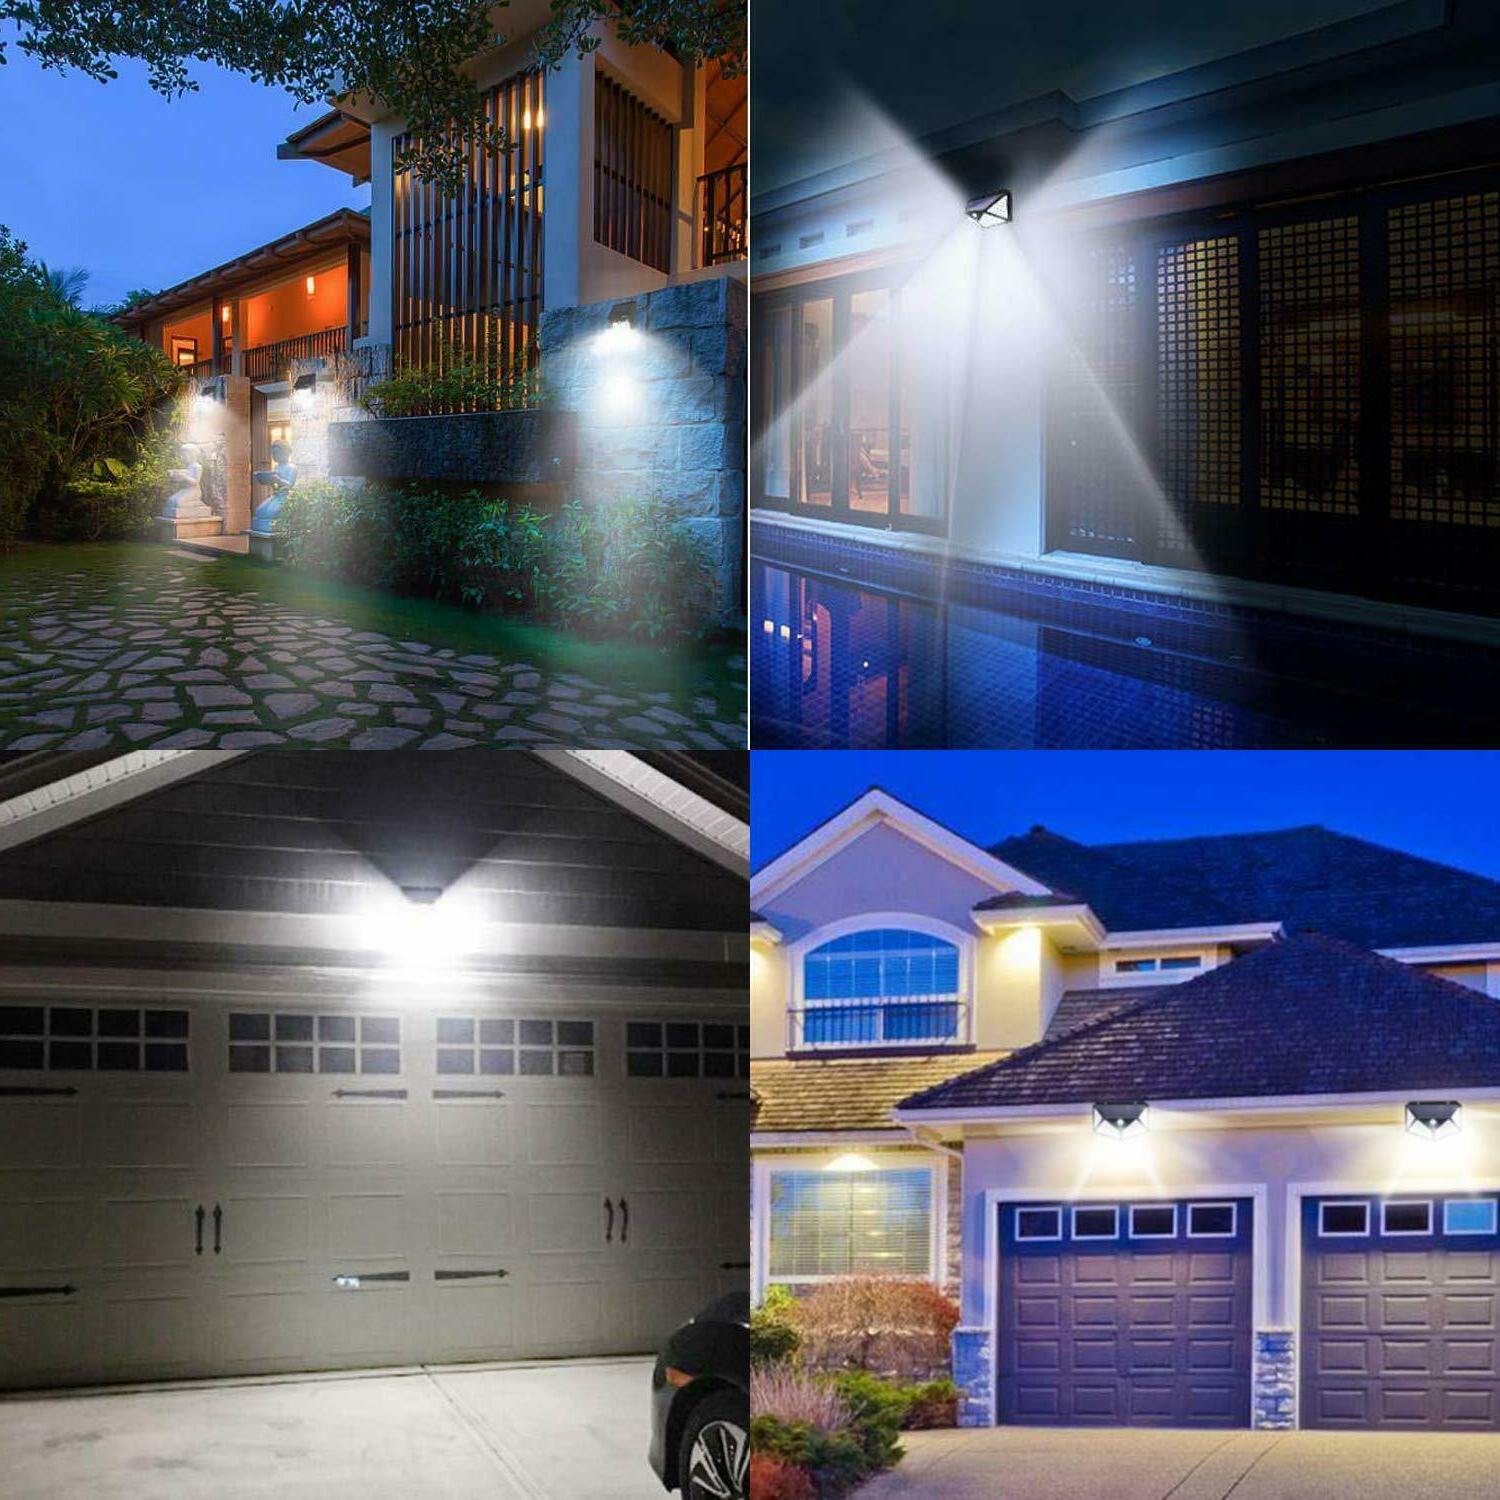 100 LED Outdoor Motion Sensor Wall Yard Pathway Patio Lamp